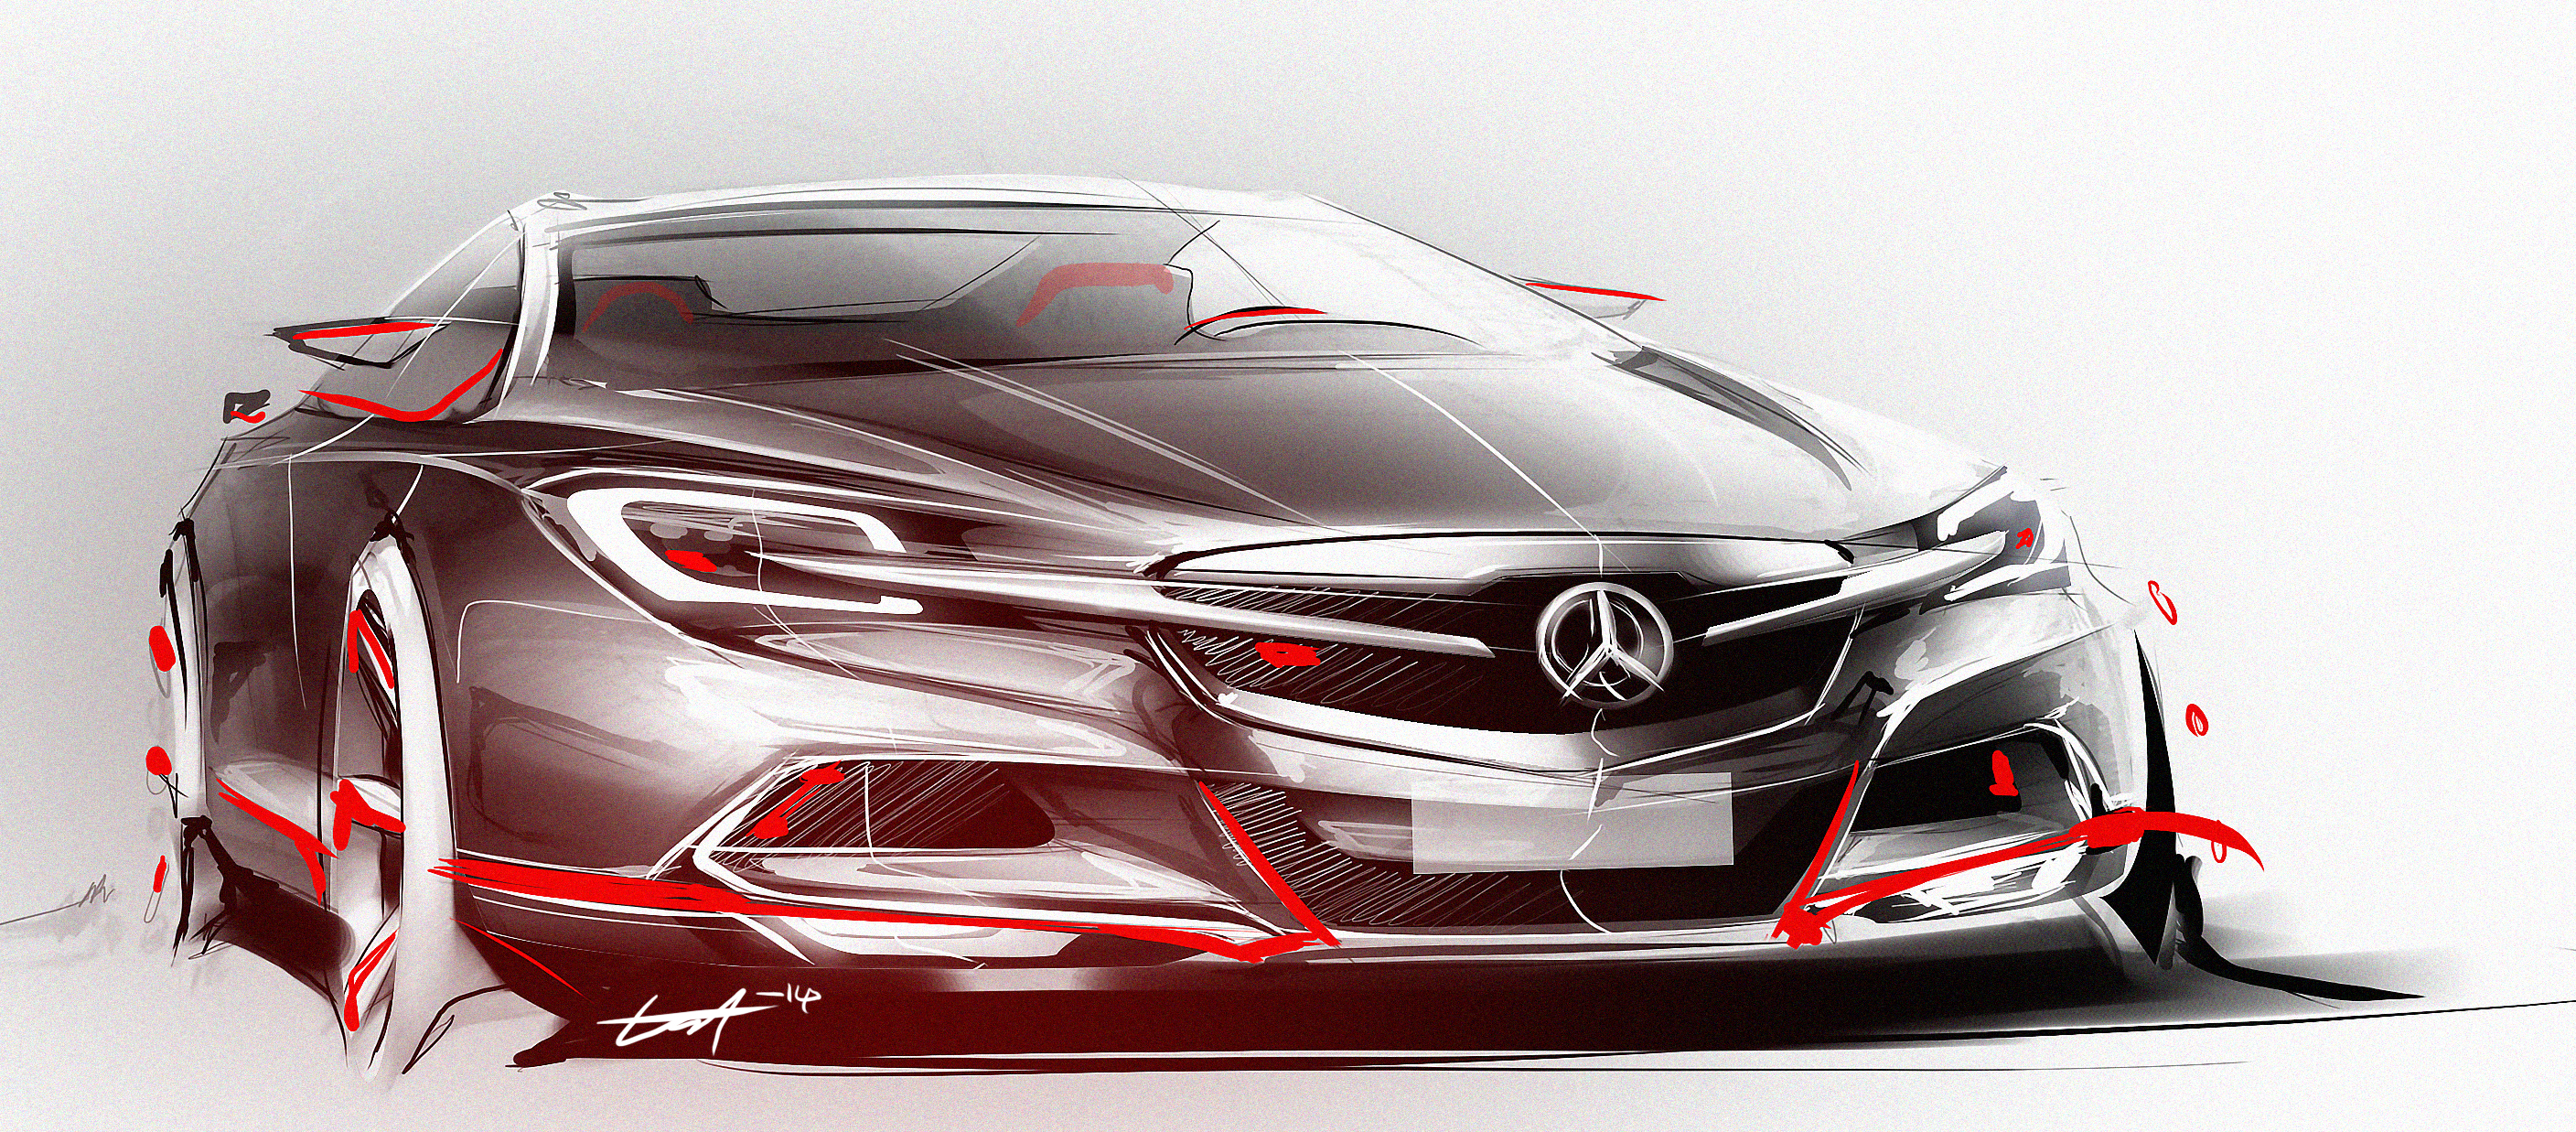 Mercedes Benz Sports Car Concept By Whitesnake16 Mercedes Benz Sports Car  Concept By Whitesnake16